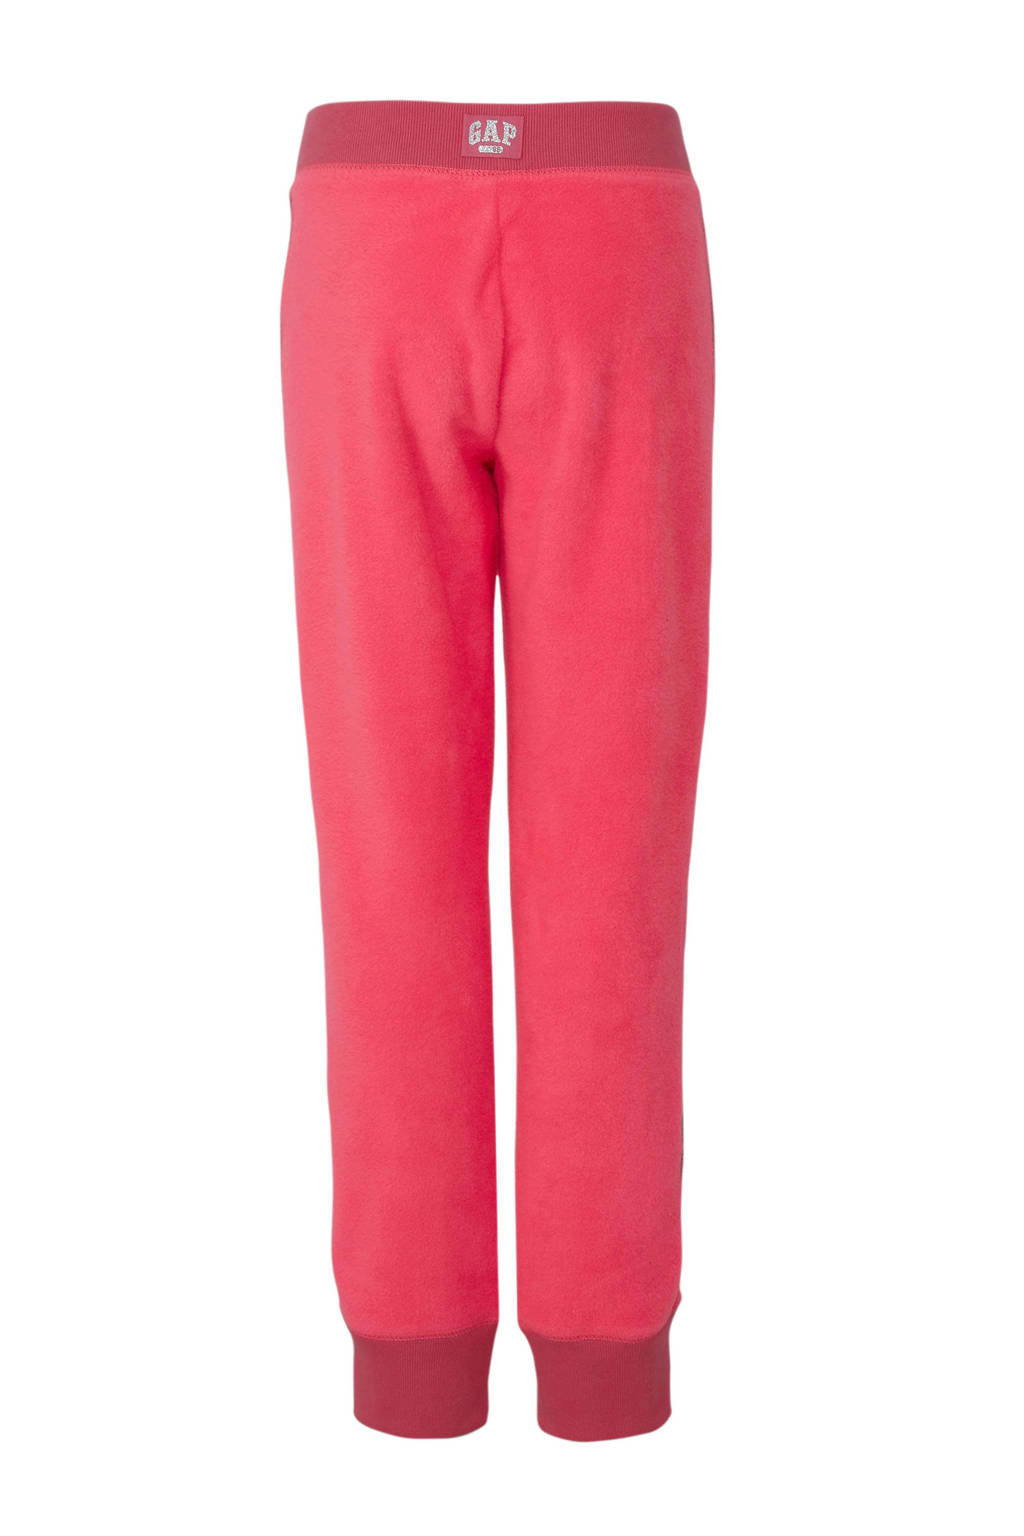 GAP fleece joggingbroek met zijstreep roze, Roze